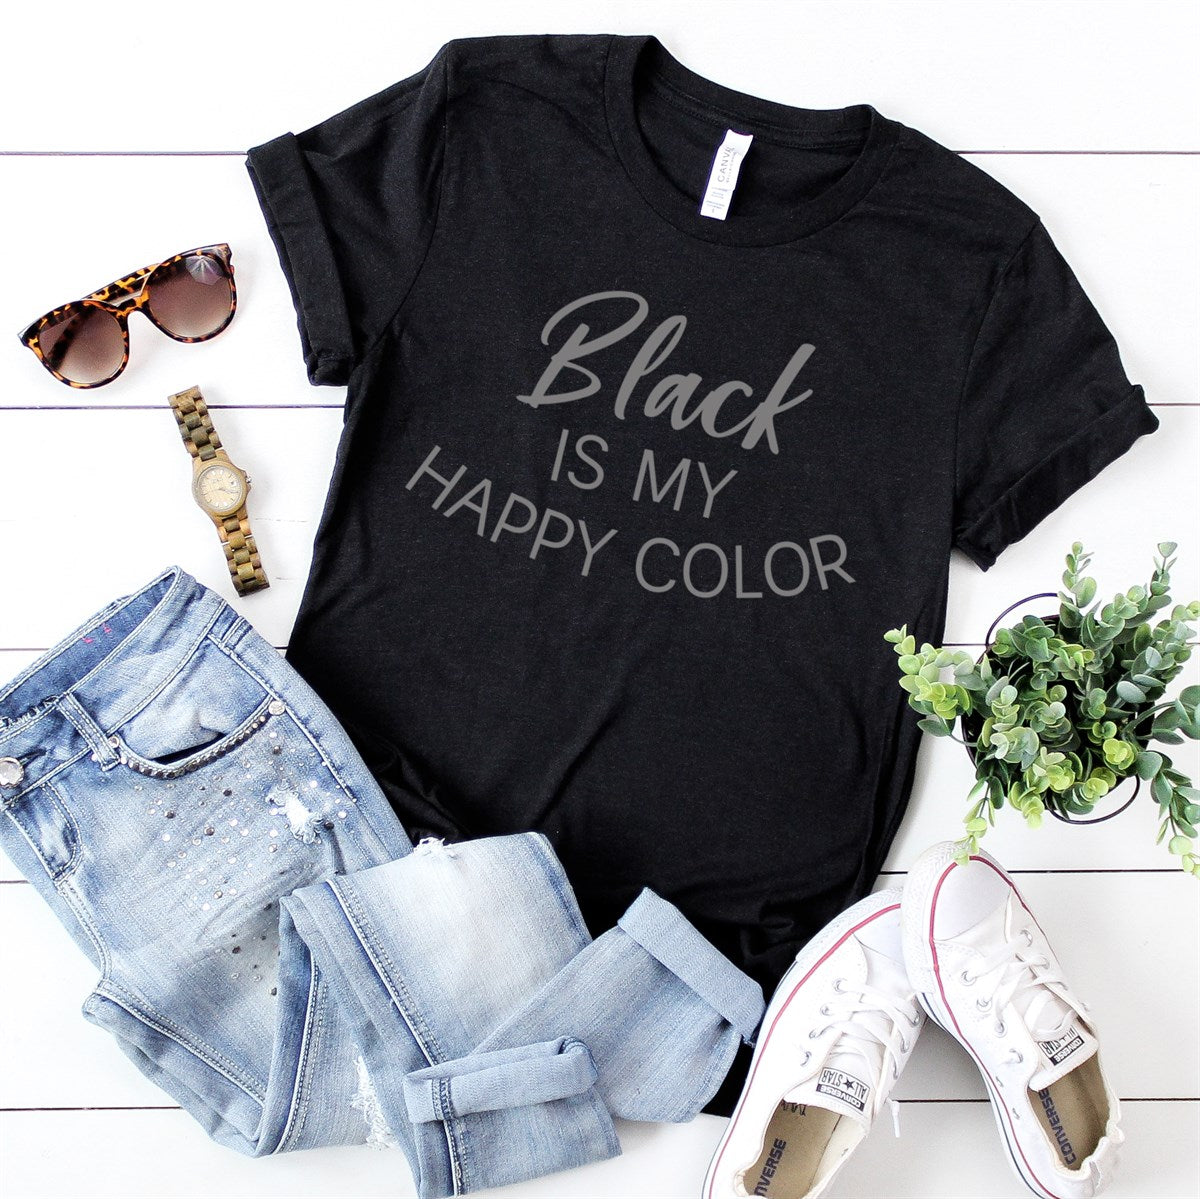 Black Is My Happy Color Tee - Limeberry Designs